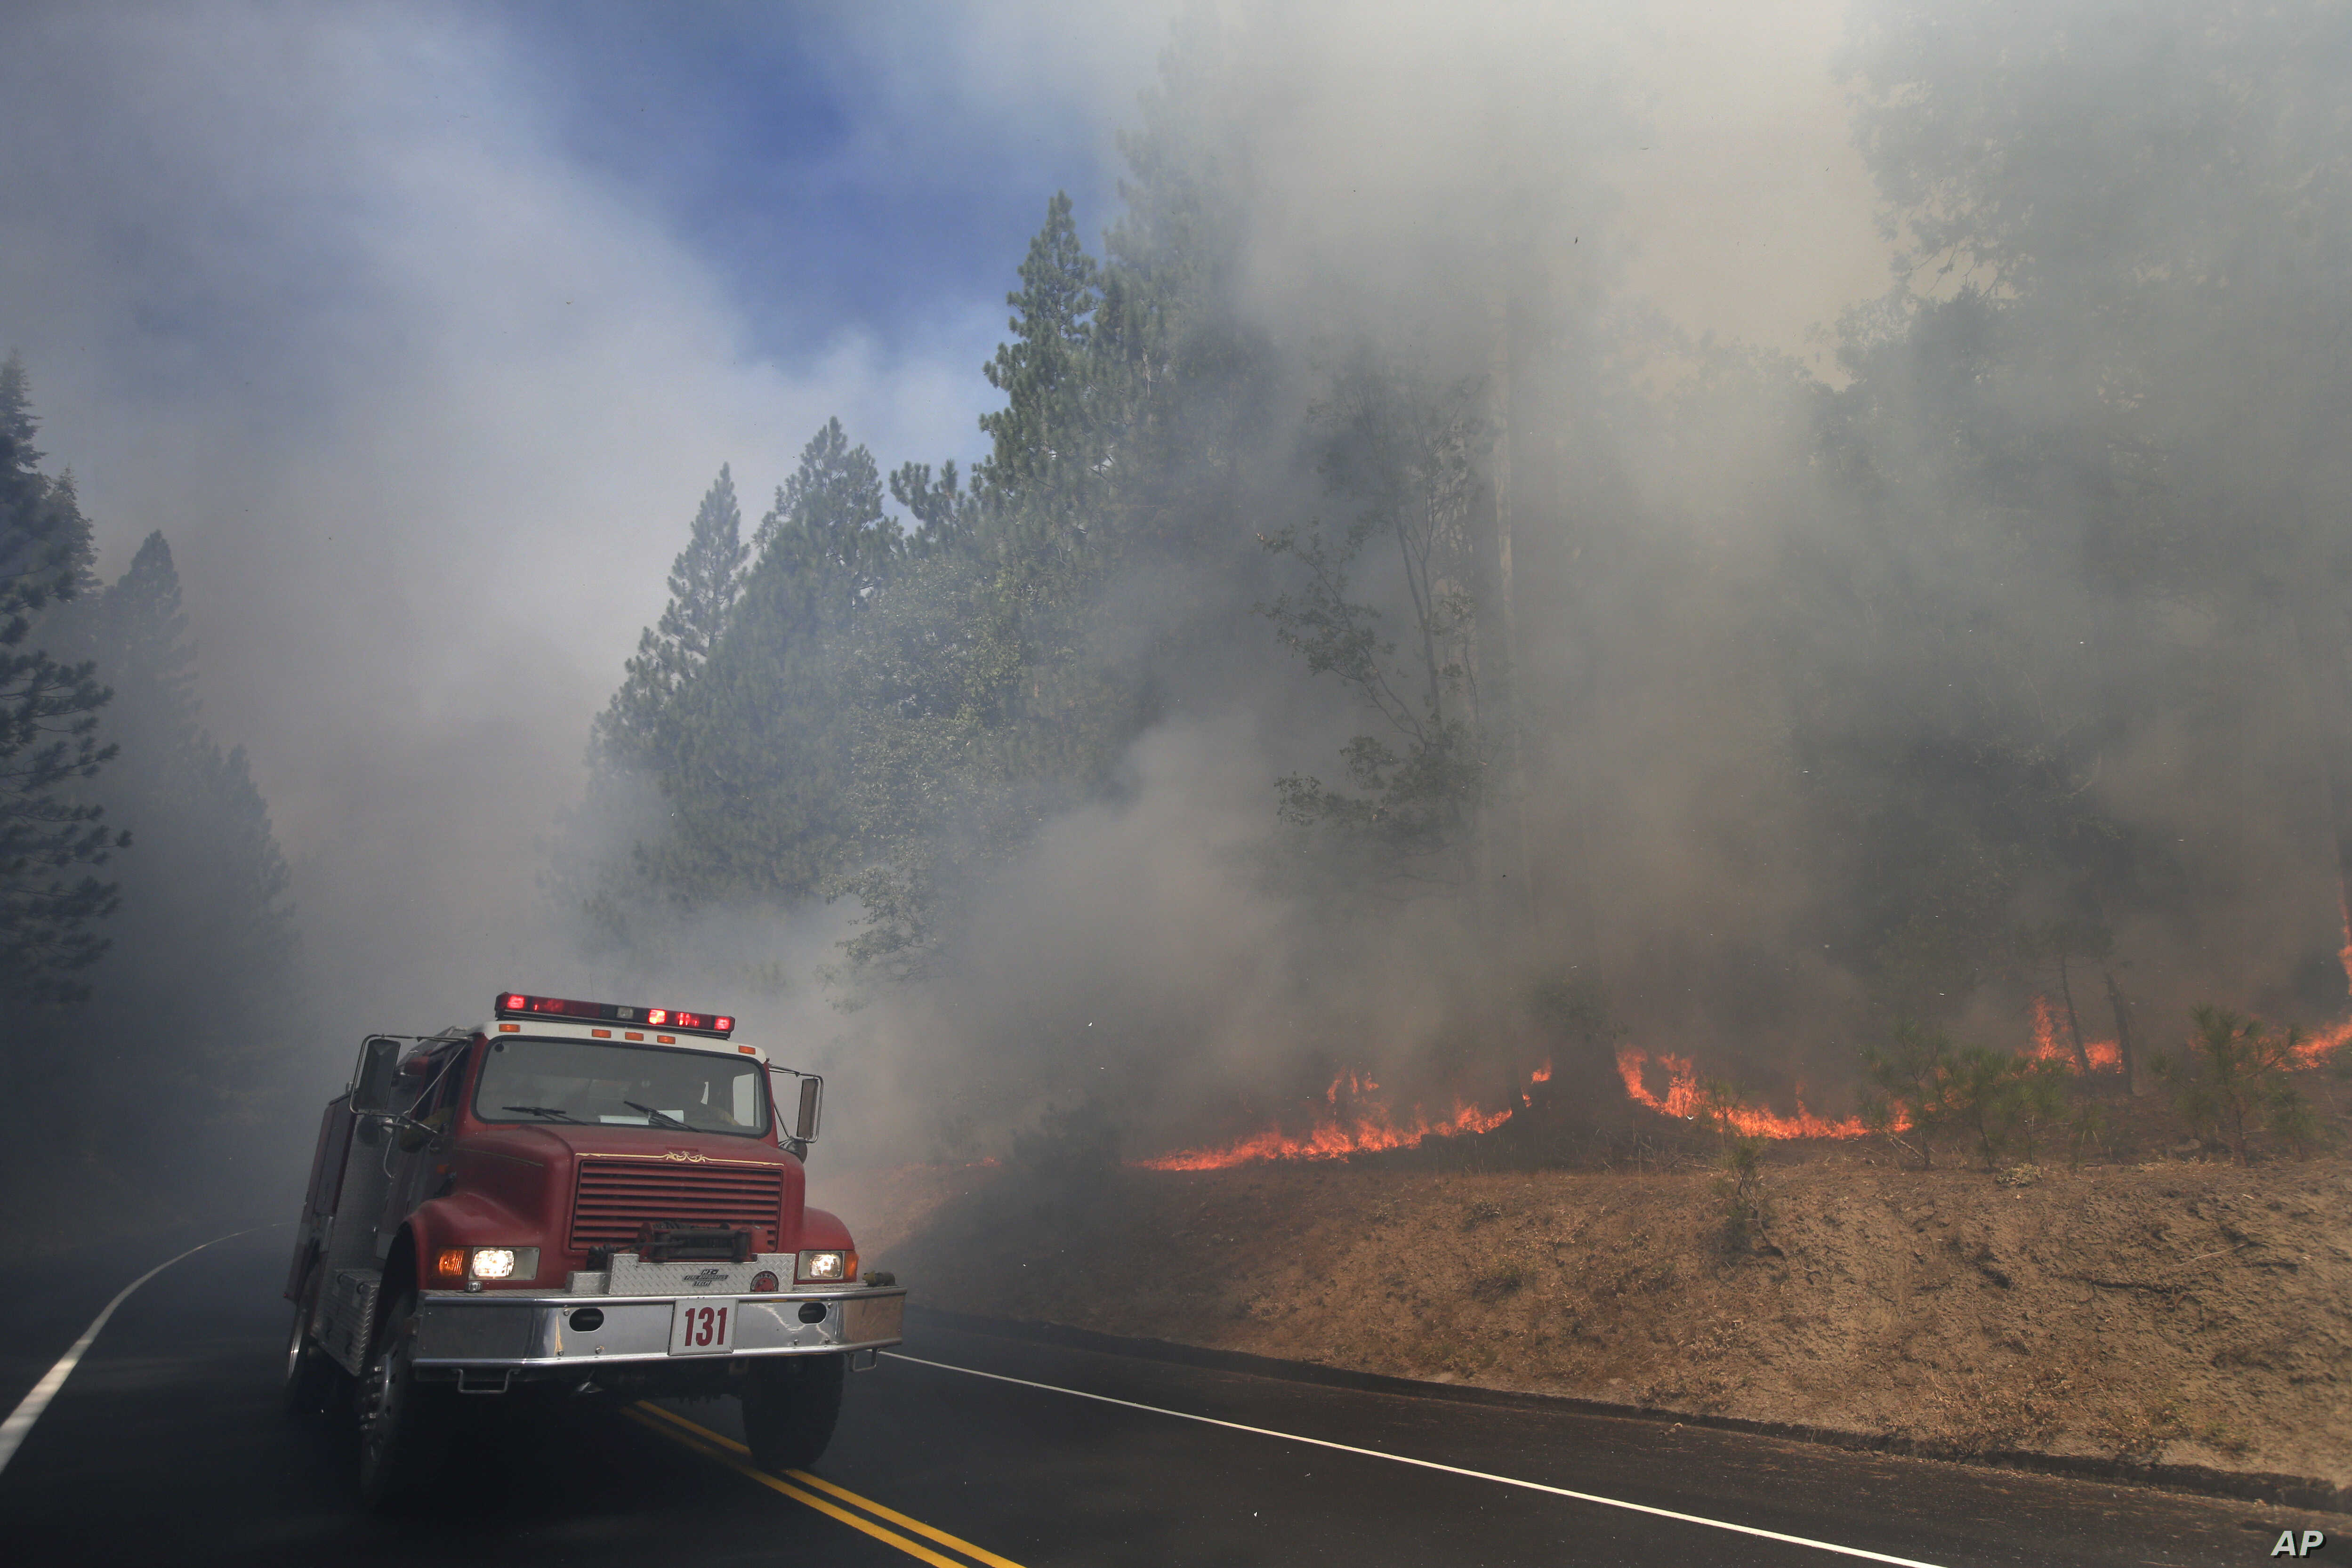 A fire truck drives past burning trees as firefighters continue to battle the Rim Fire near Yosemite National Park, Calif., Aug. 26, 2013.